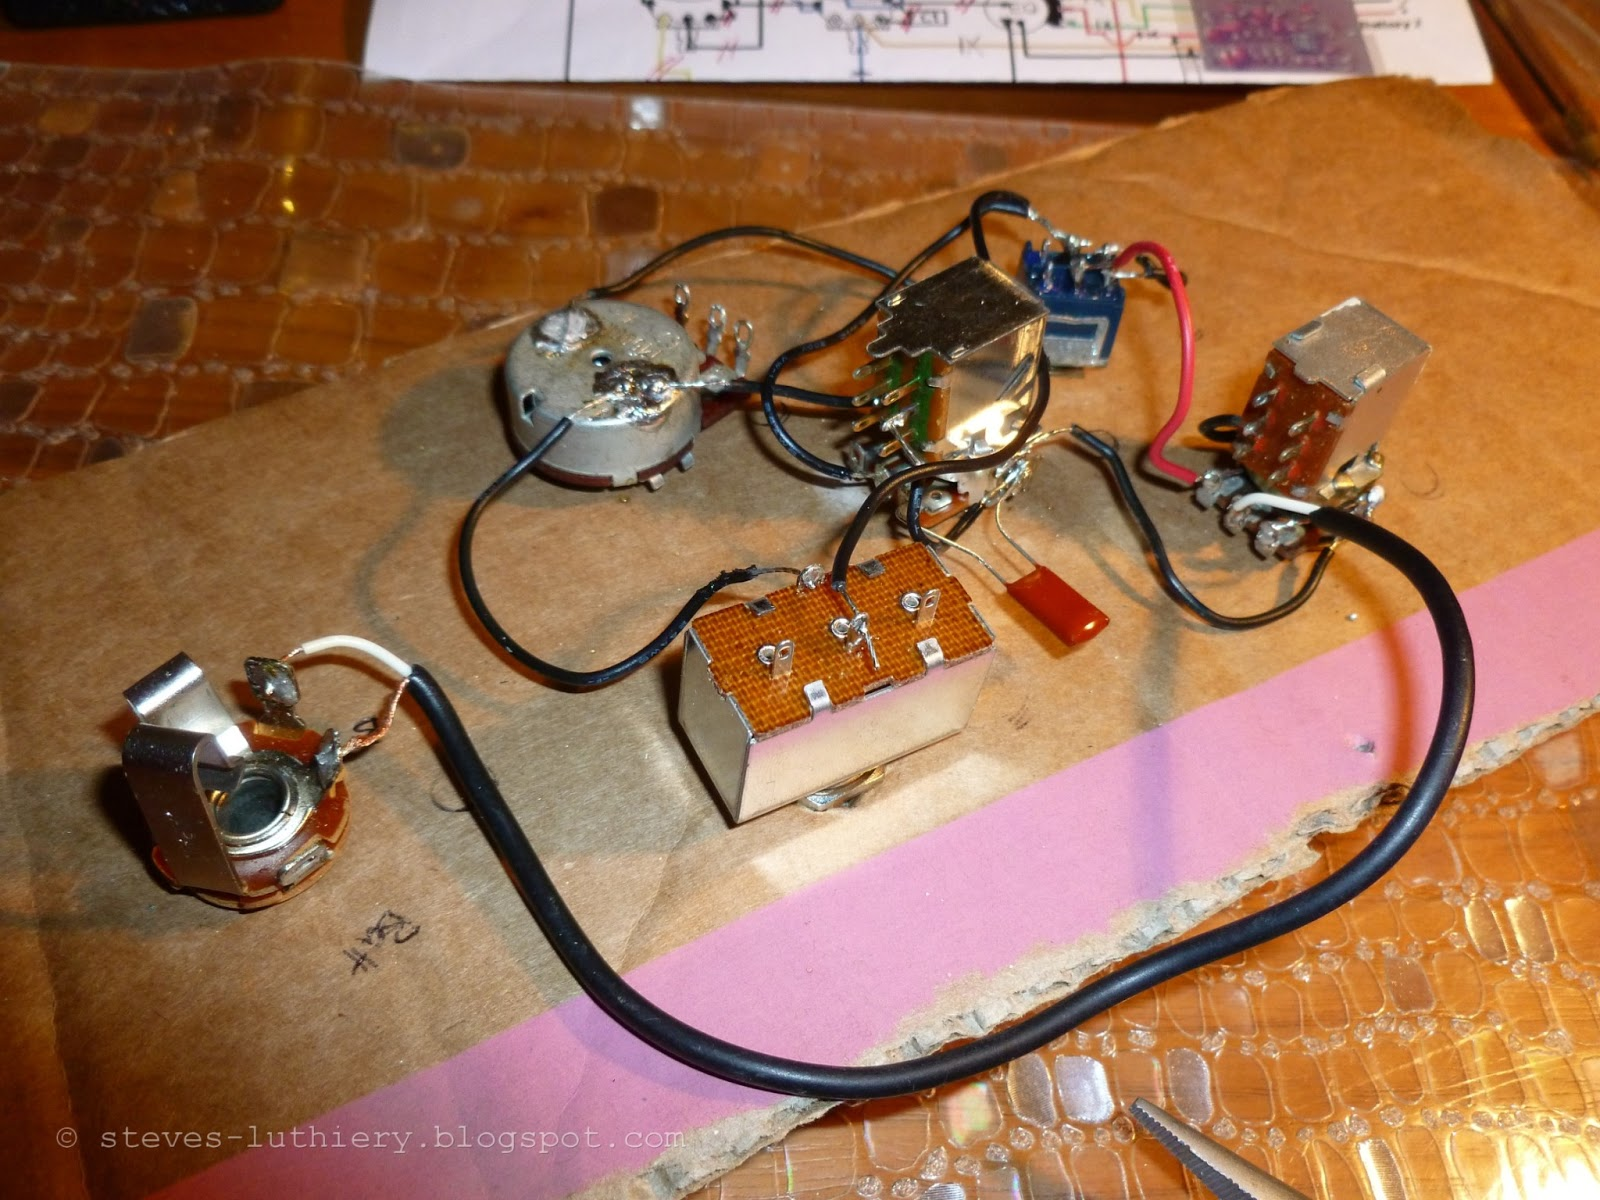 Steves Luthiery Blog 2013 Wiring Guitar Jack Input Including The Shielded Wire Salvaged From Scraps That Came With To Volume Pot And Tone Capacitor